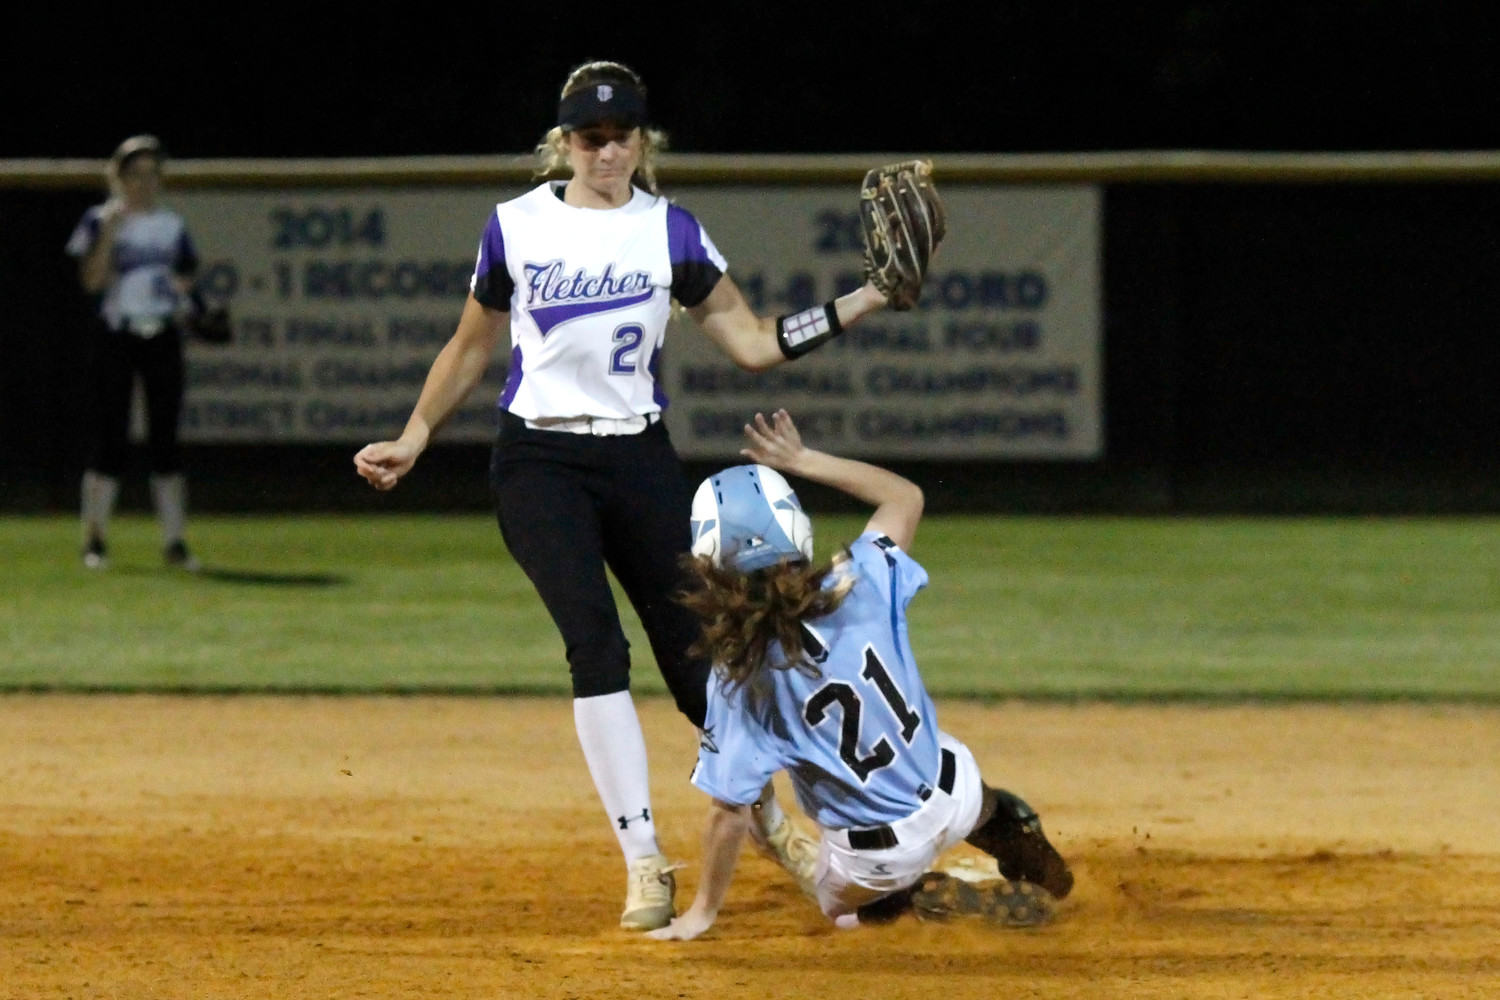 Madison Lucchino of the Sharks steals second.